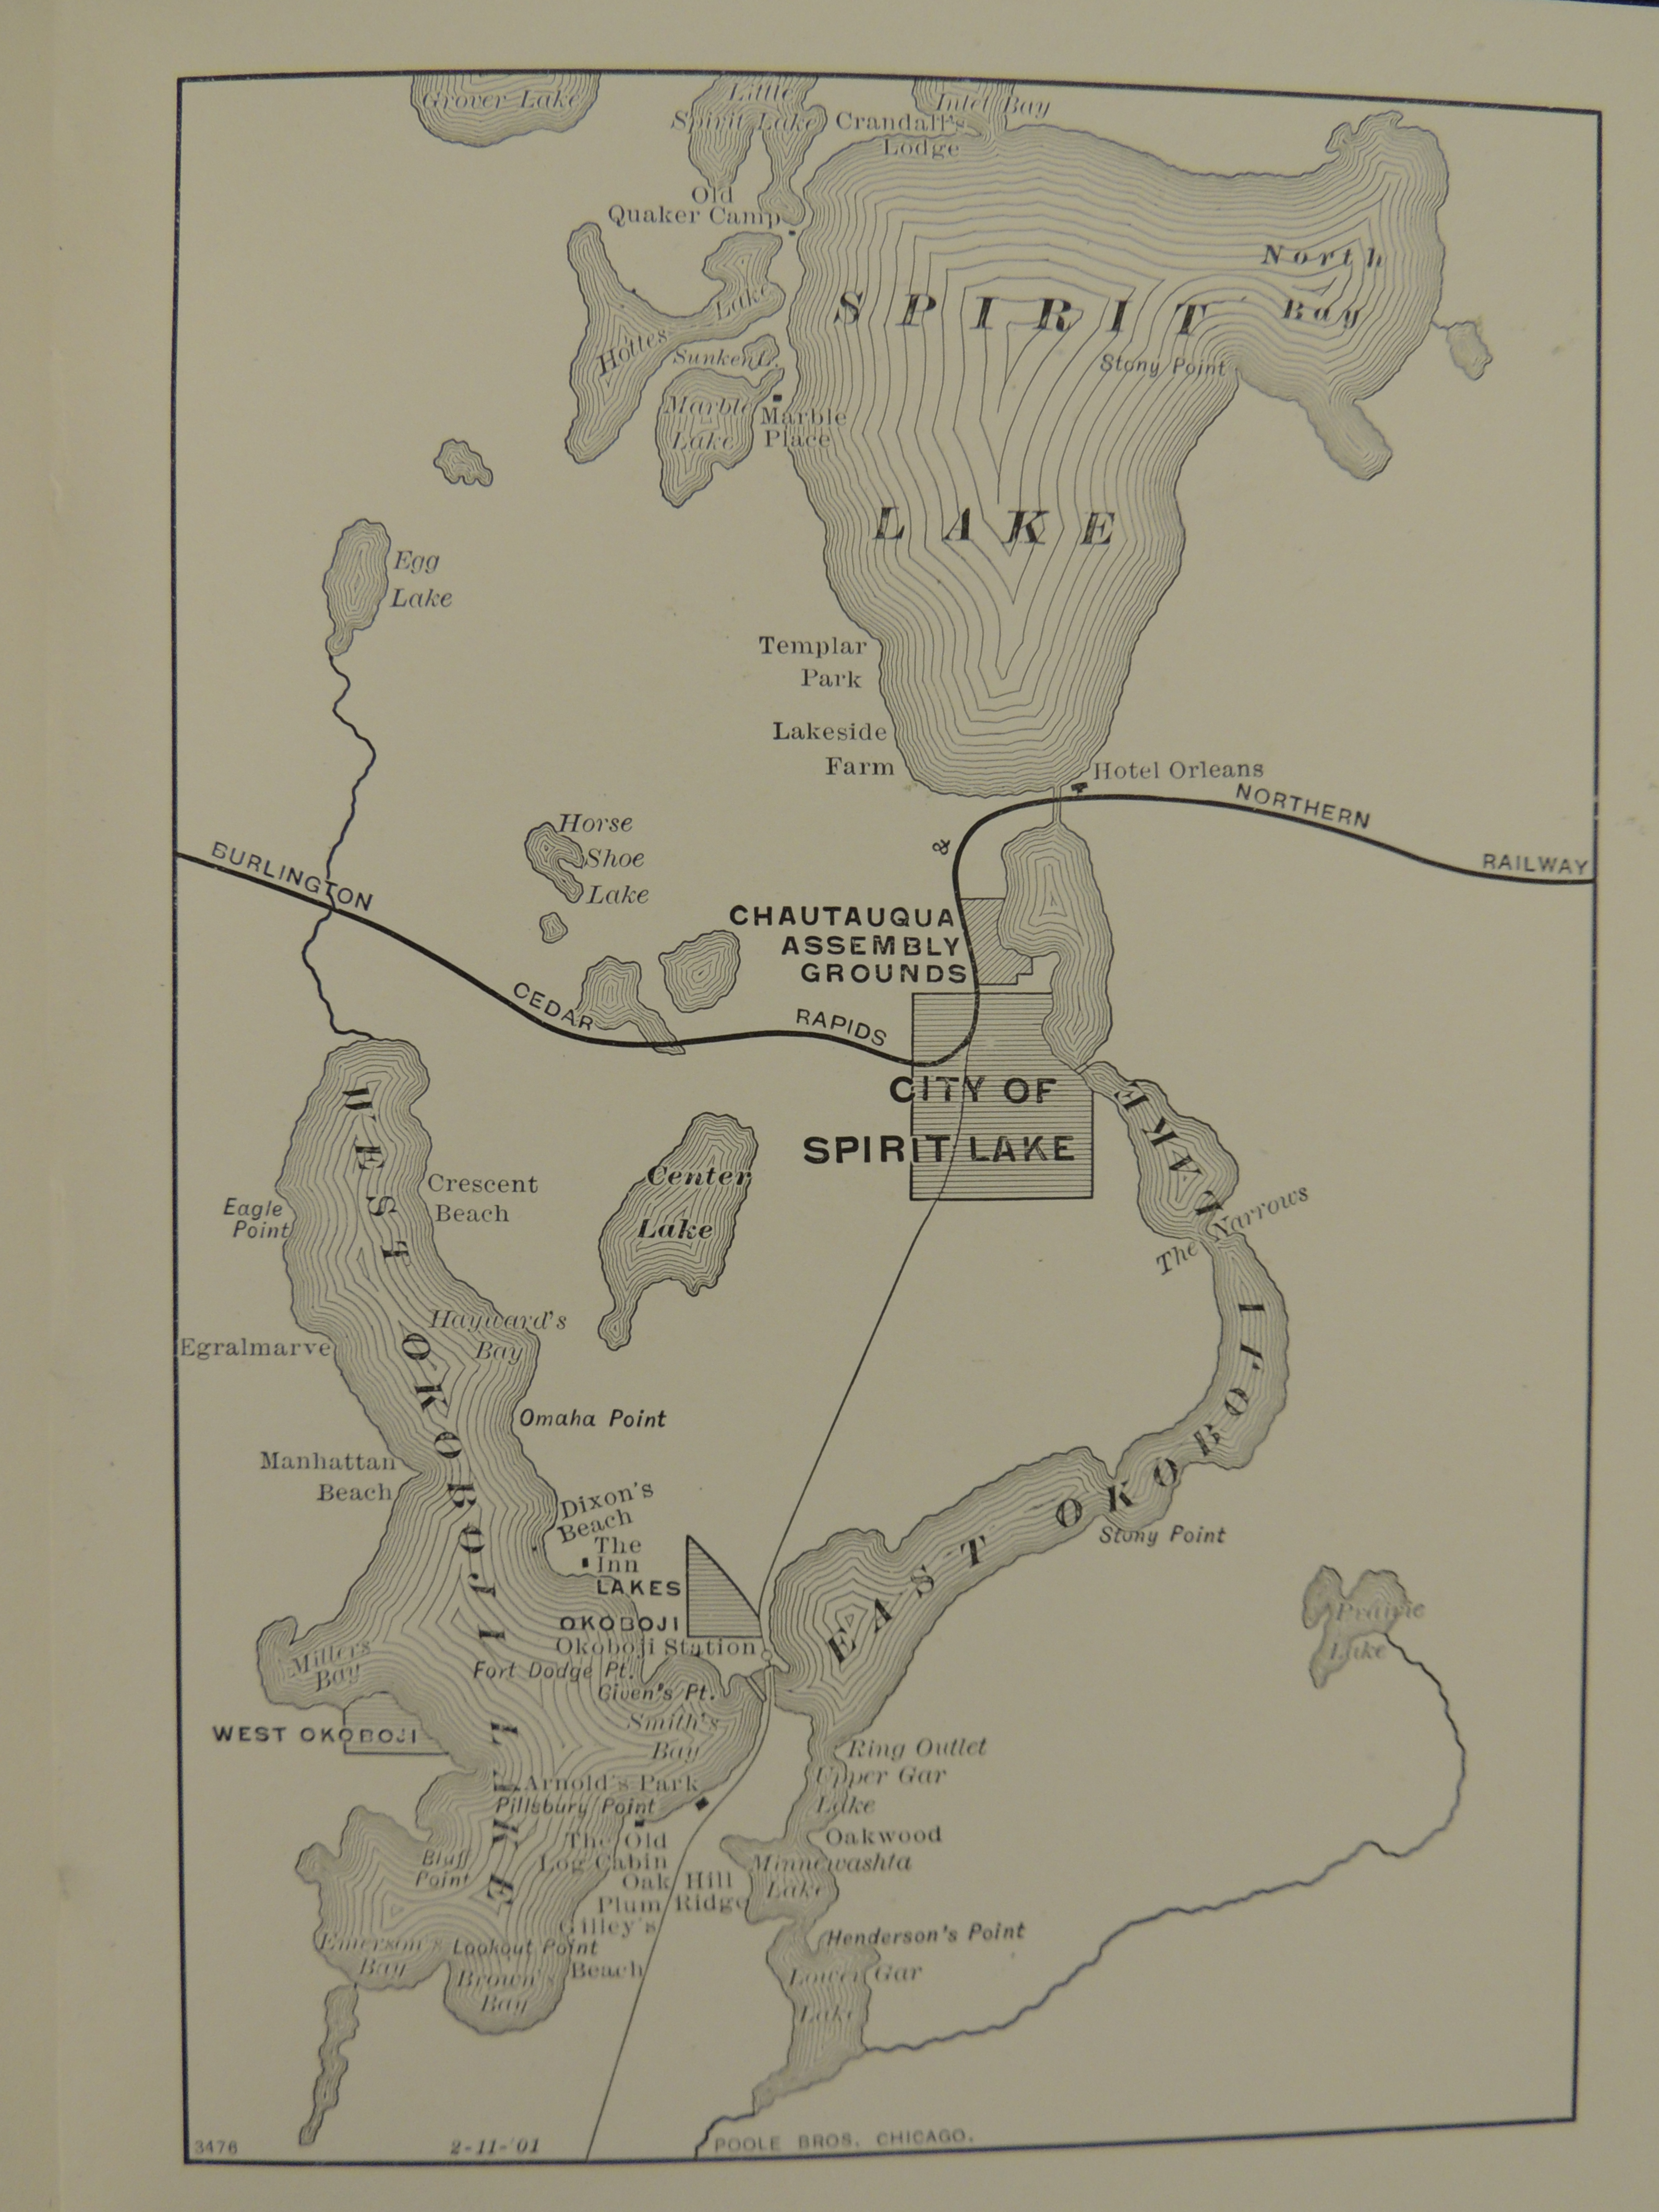 Rare Book Highlights  Railroad tourism to Iowa lakes   Cardinal Tales Map of the Spirit Lake Okoboji area showing the railway and attractions